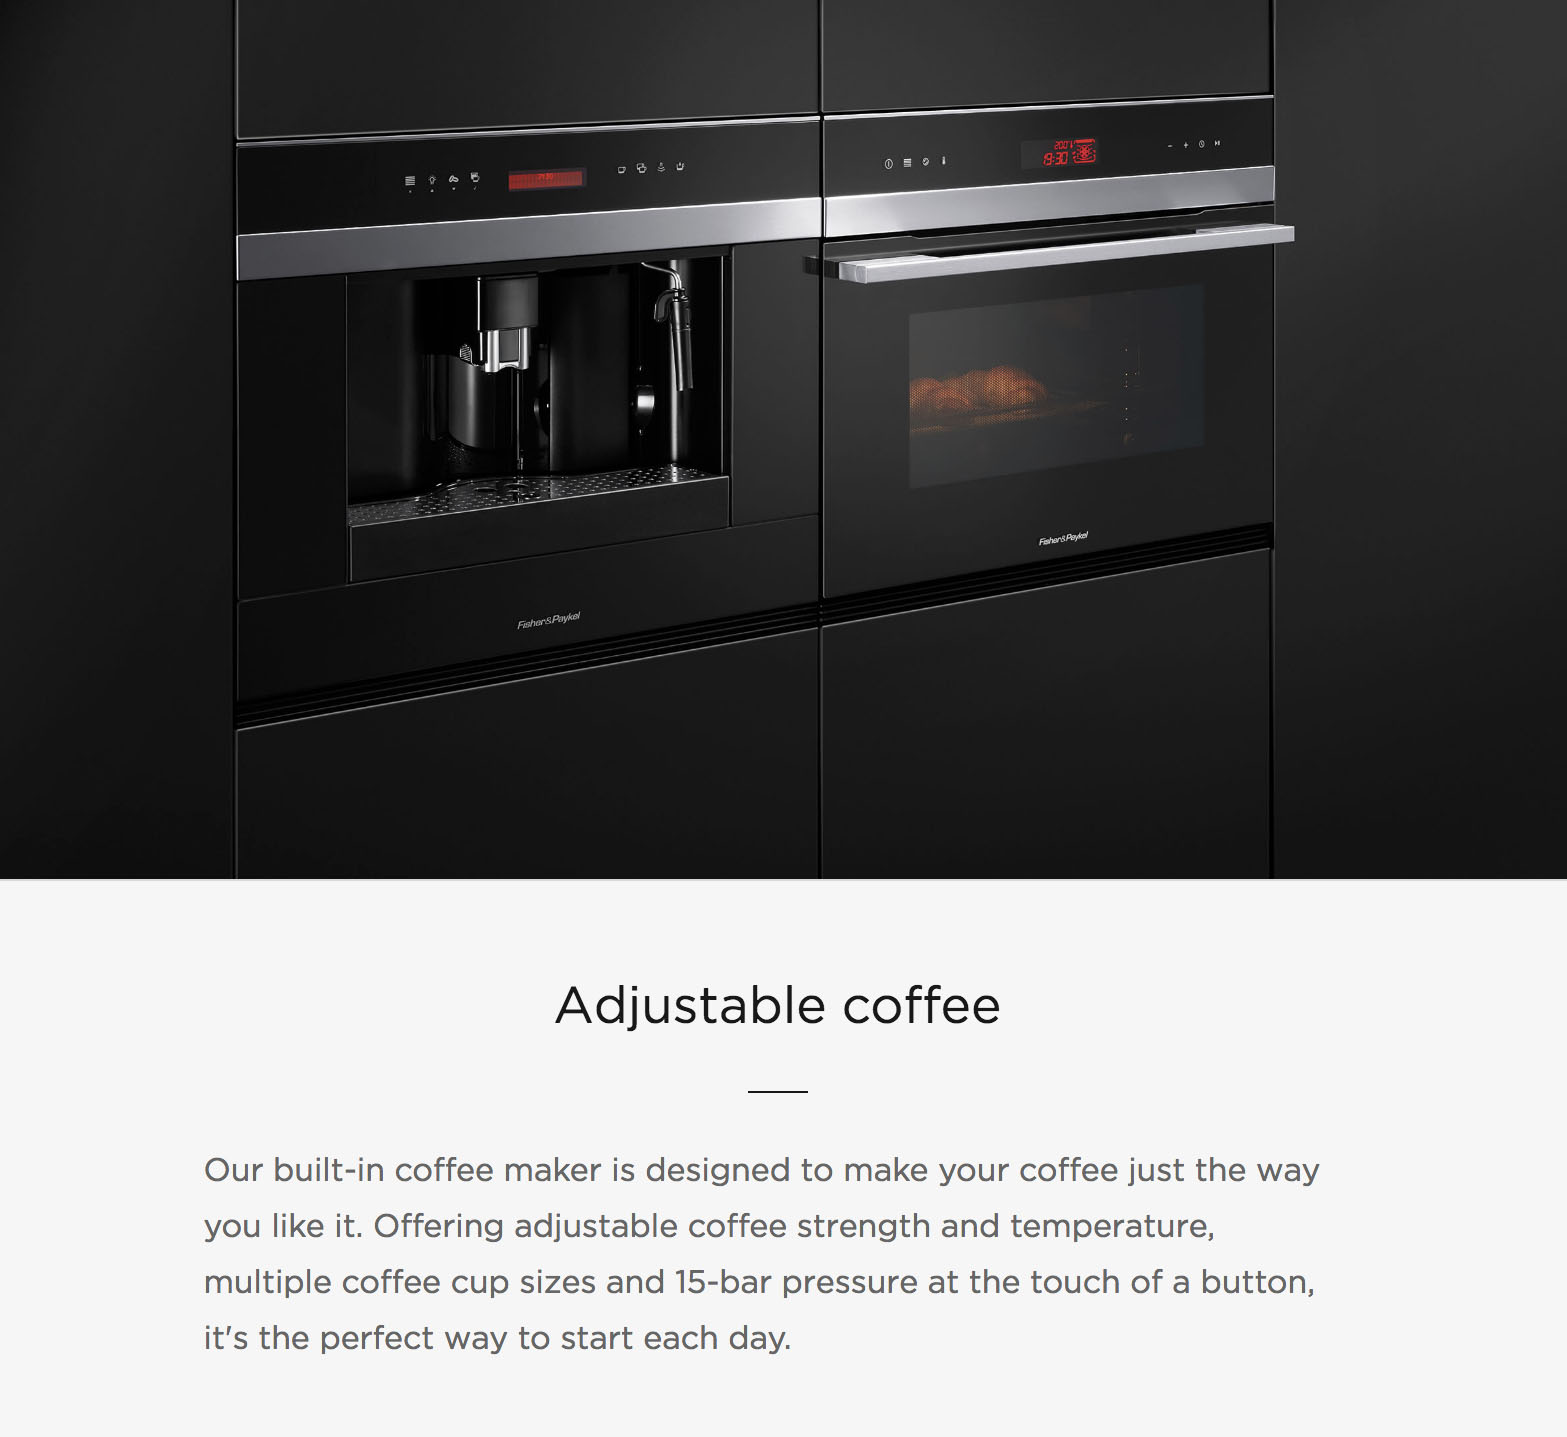 Adjustable Coffee